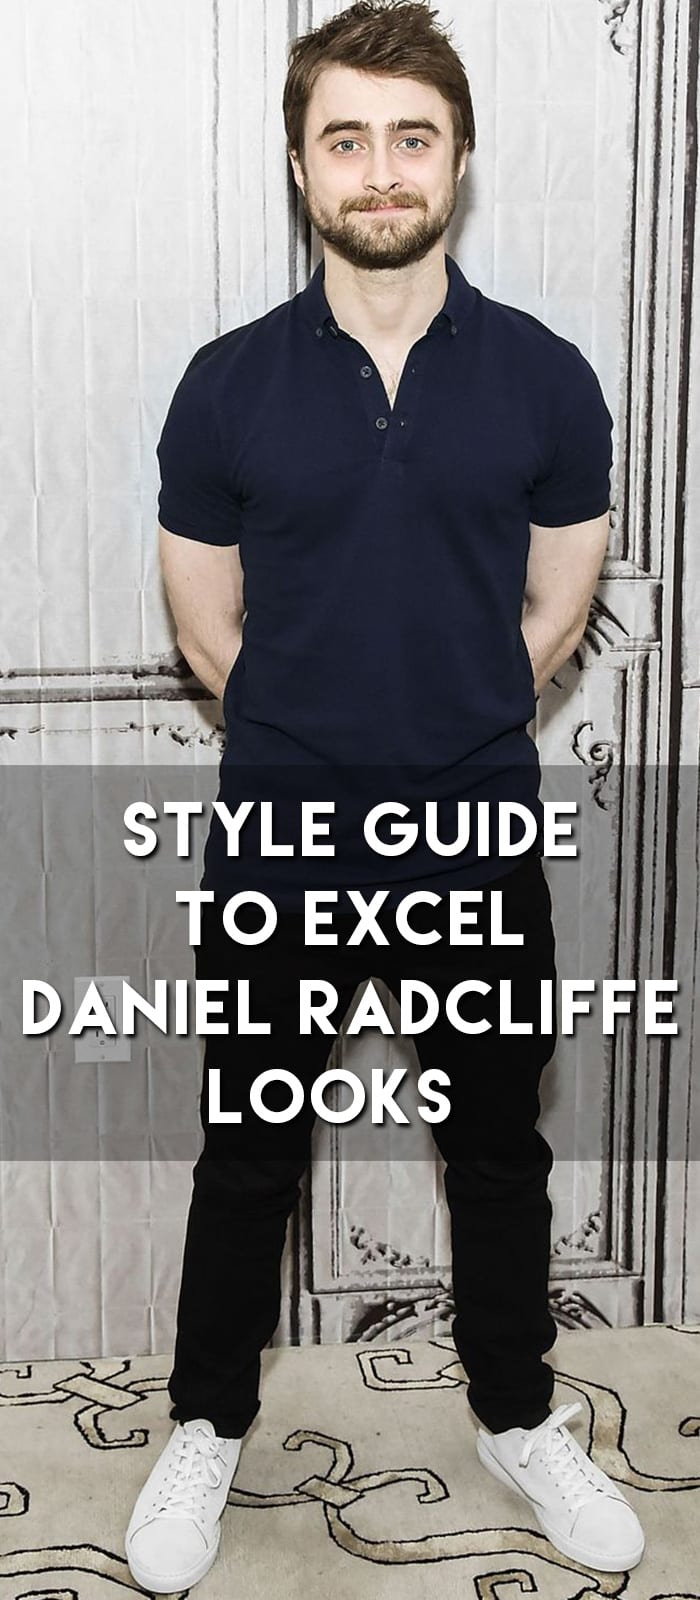 Style Guide To Excel Daniel Radcliffe Looks